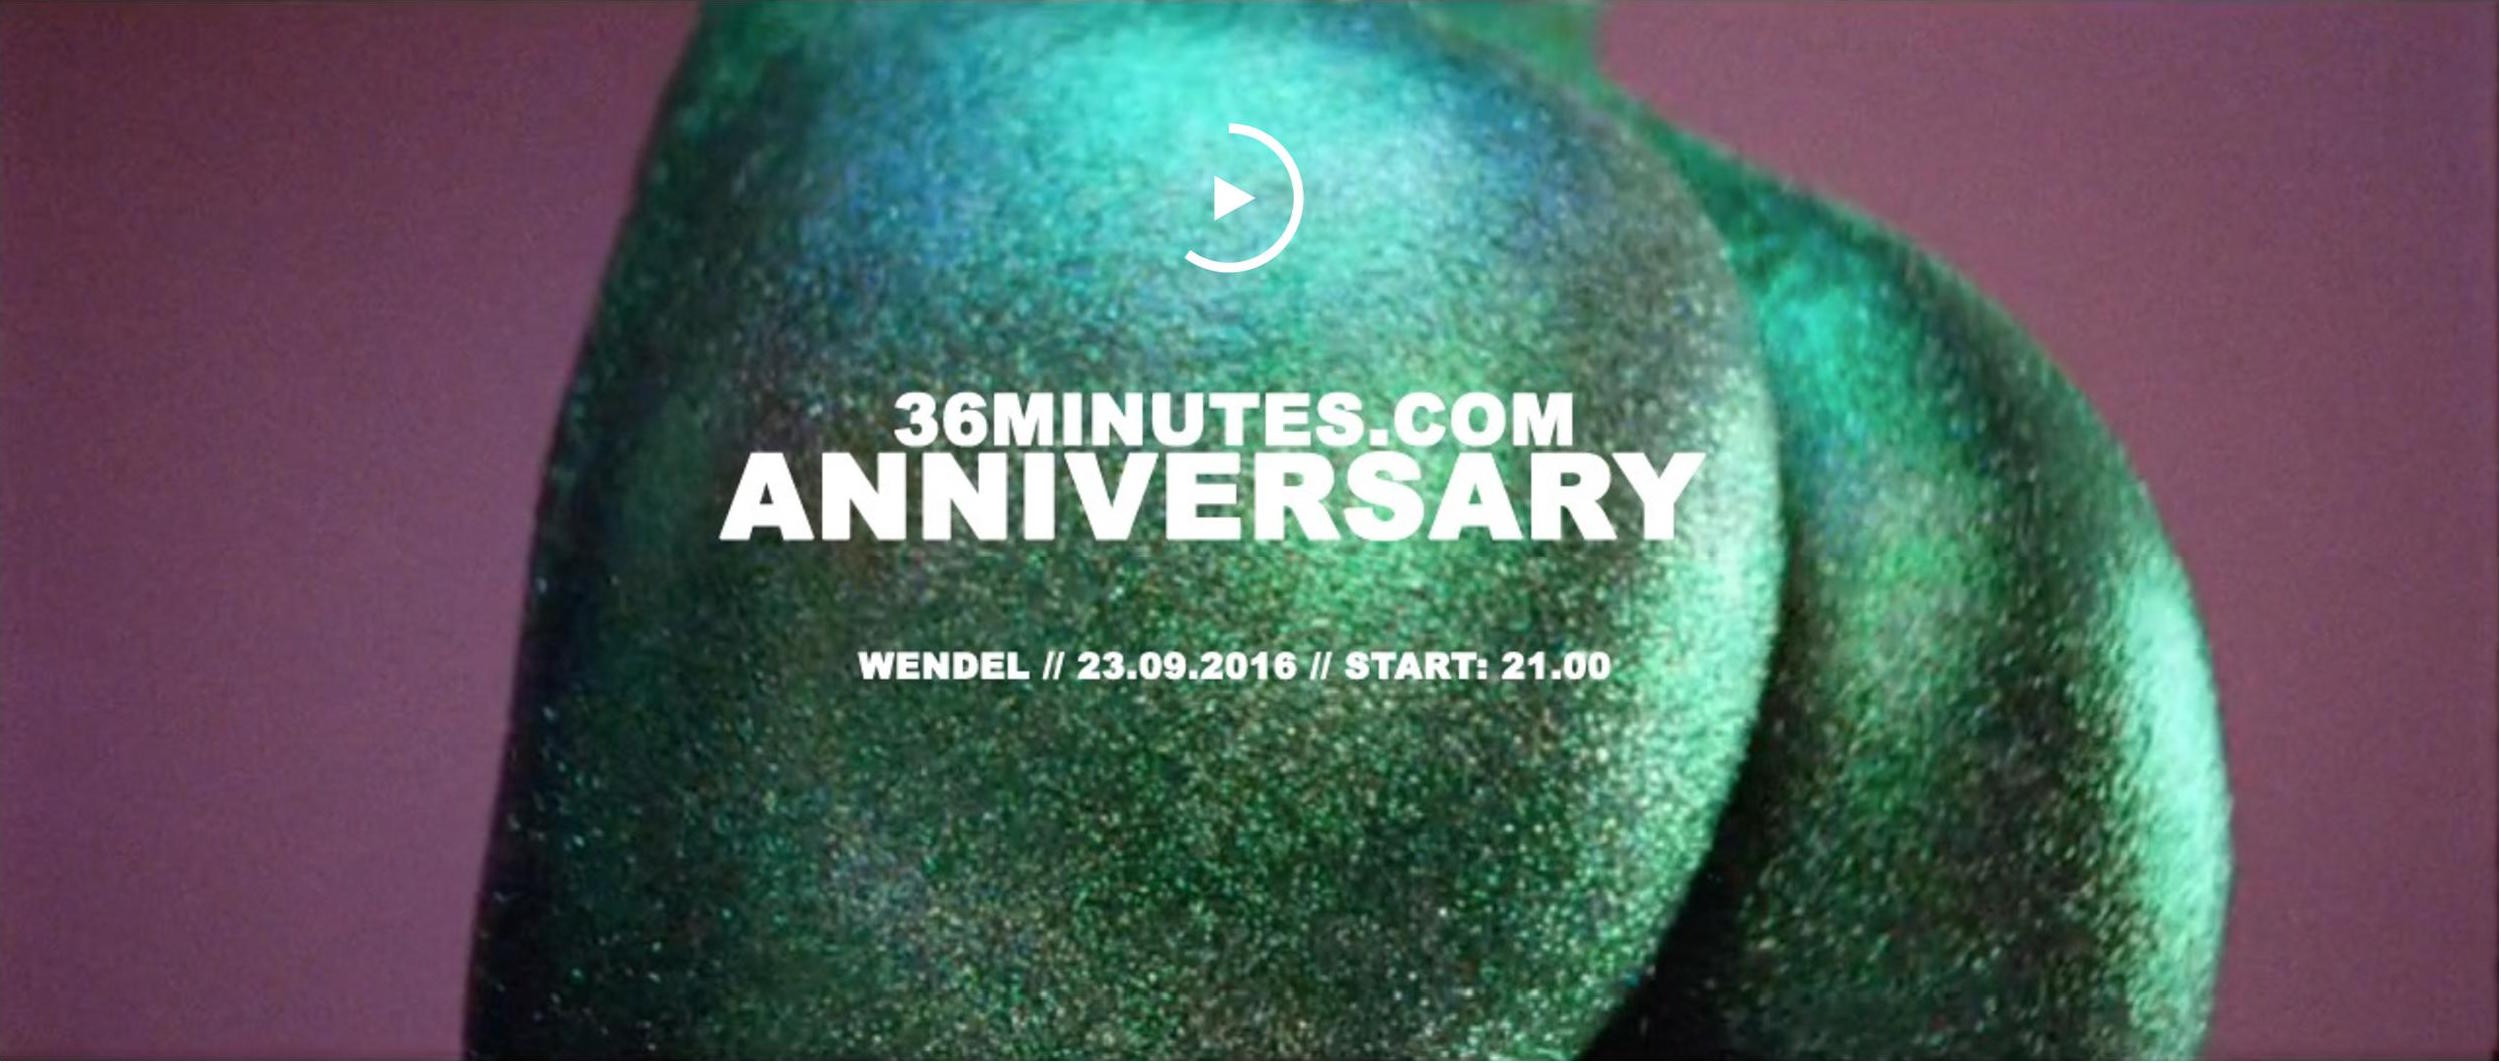 36minutes-anniversary-flyer